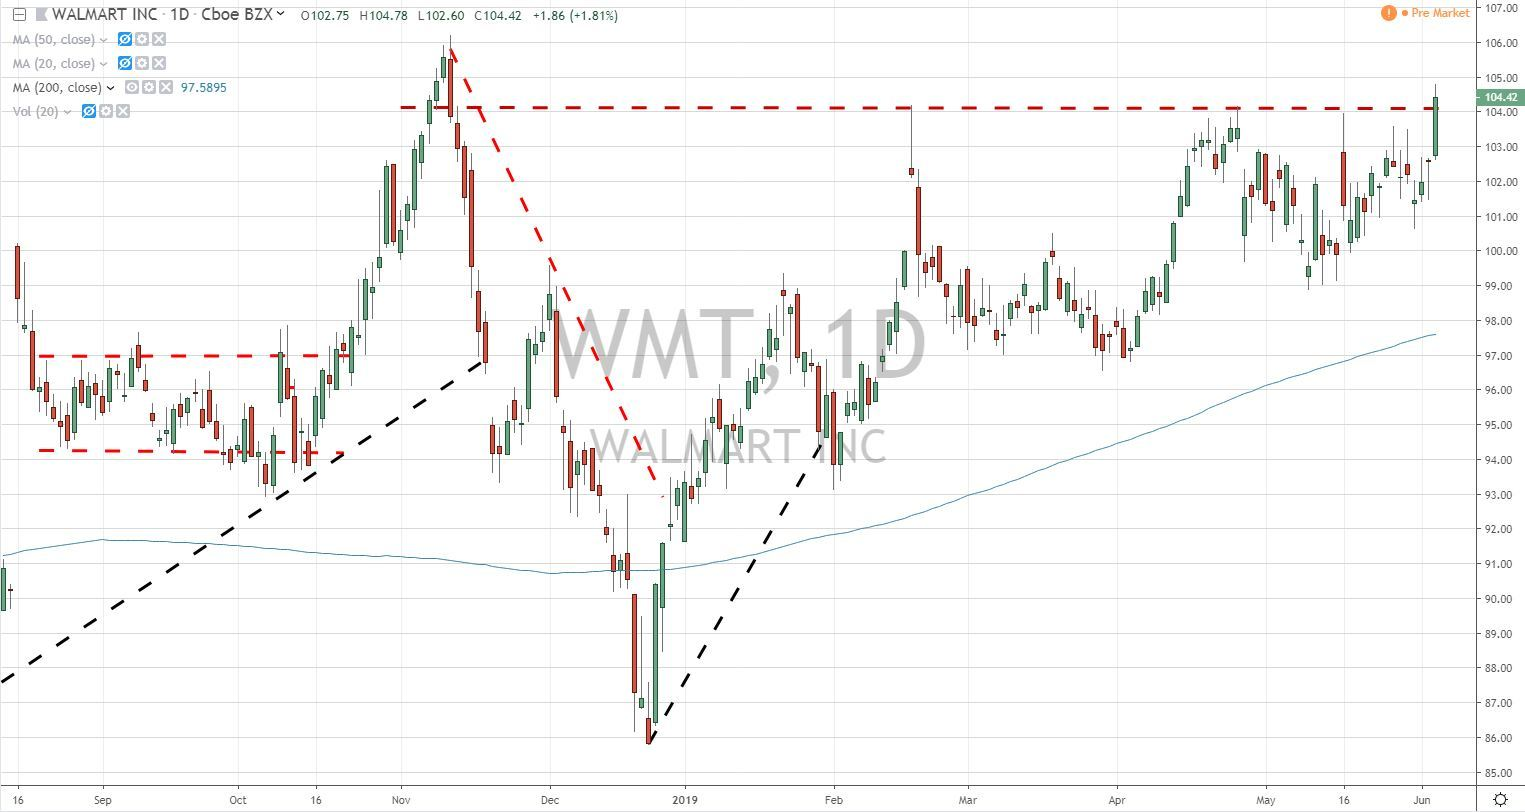 Walmart WMT False Breakout Trade 6.6-19